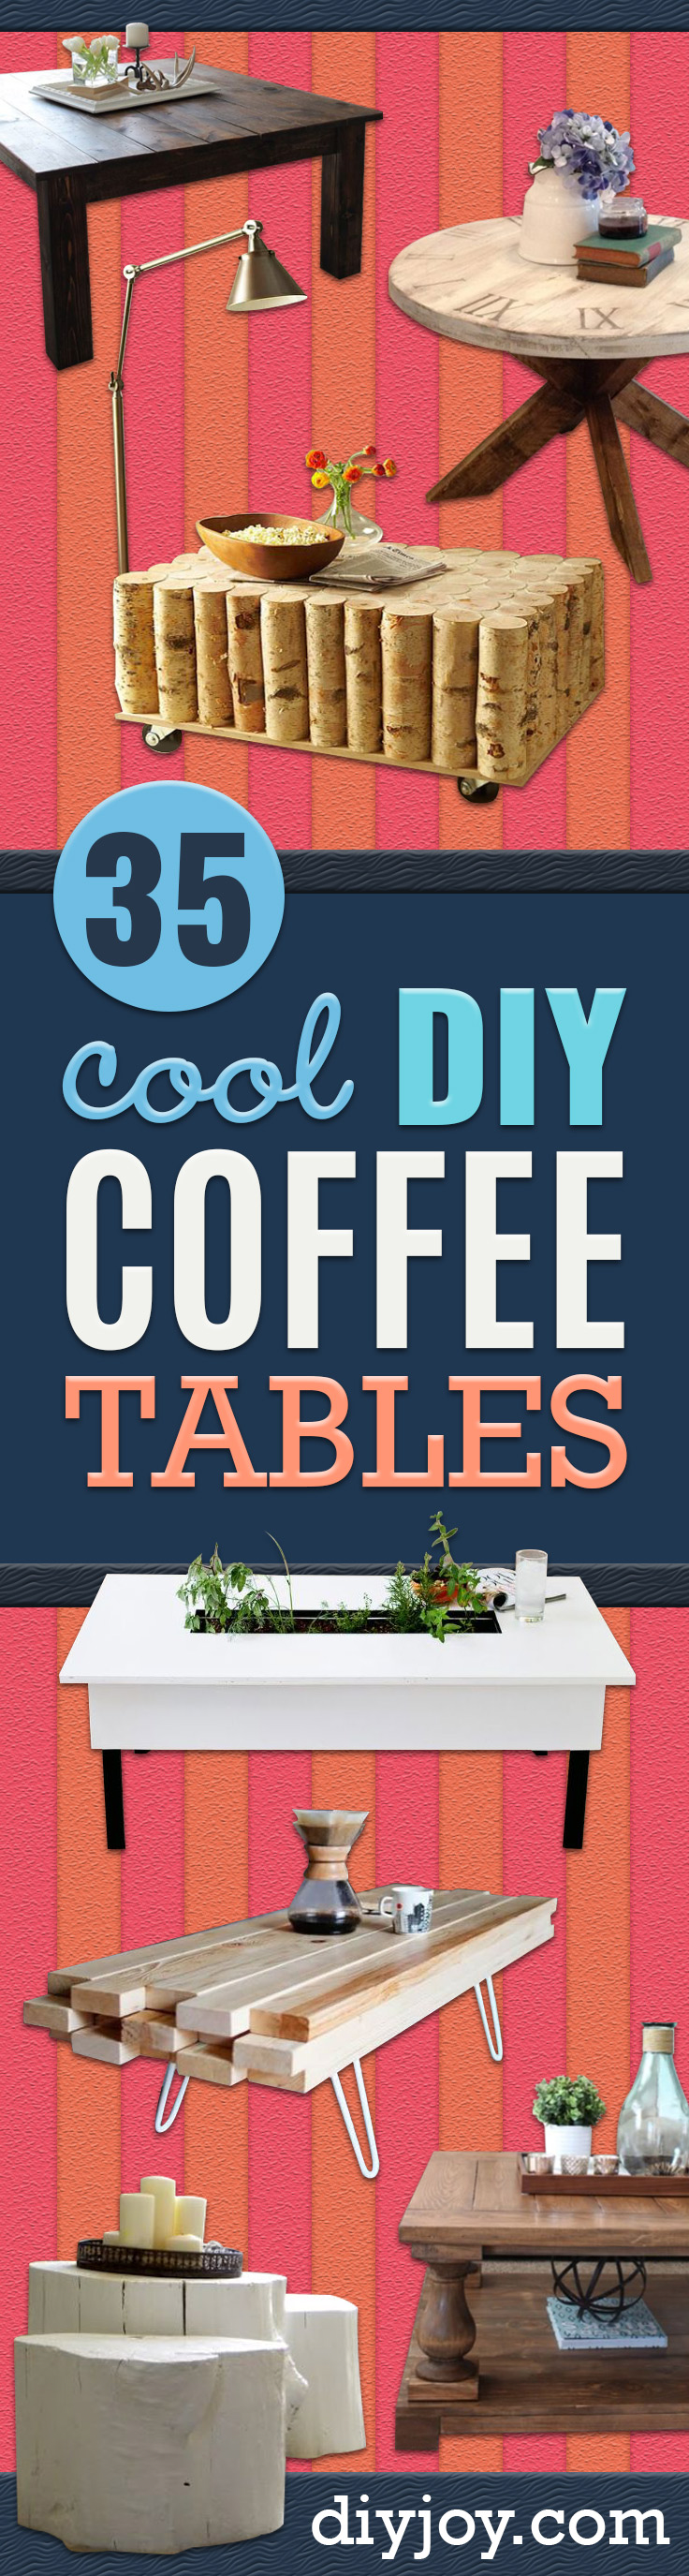 DIY Coffee Tables - Easy Do It Yourself Furniture Ideas for The Living Room Table - Cool Projects for Making a Coffee Table With Crates, Boxes, Stone, Industrial Pipe, Tile, Pallets, Old Doors, Windows and Repurposed Wood Planks - Rustic Farmhouse Home Decor, Modern Decorating Ideas, Simply Shabby Chic and All White Looks for Minimalist Interiors http://diyjoy.com/diy-coffee-table-ideas